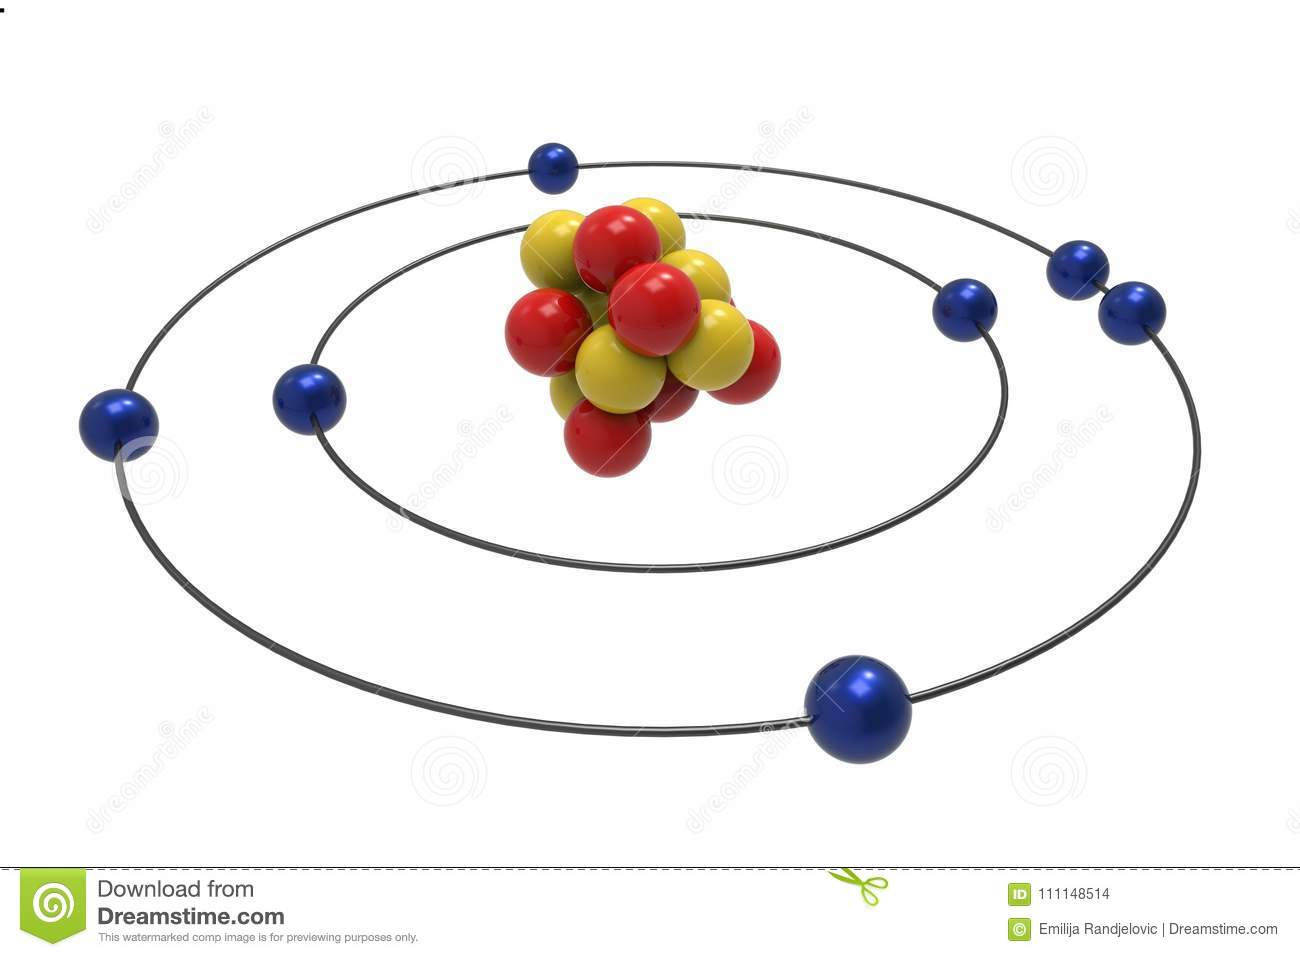 hight resolution of bohr model of nitrogen atom with proton neutron and electron